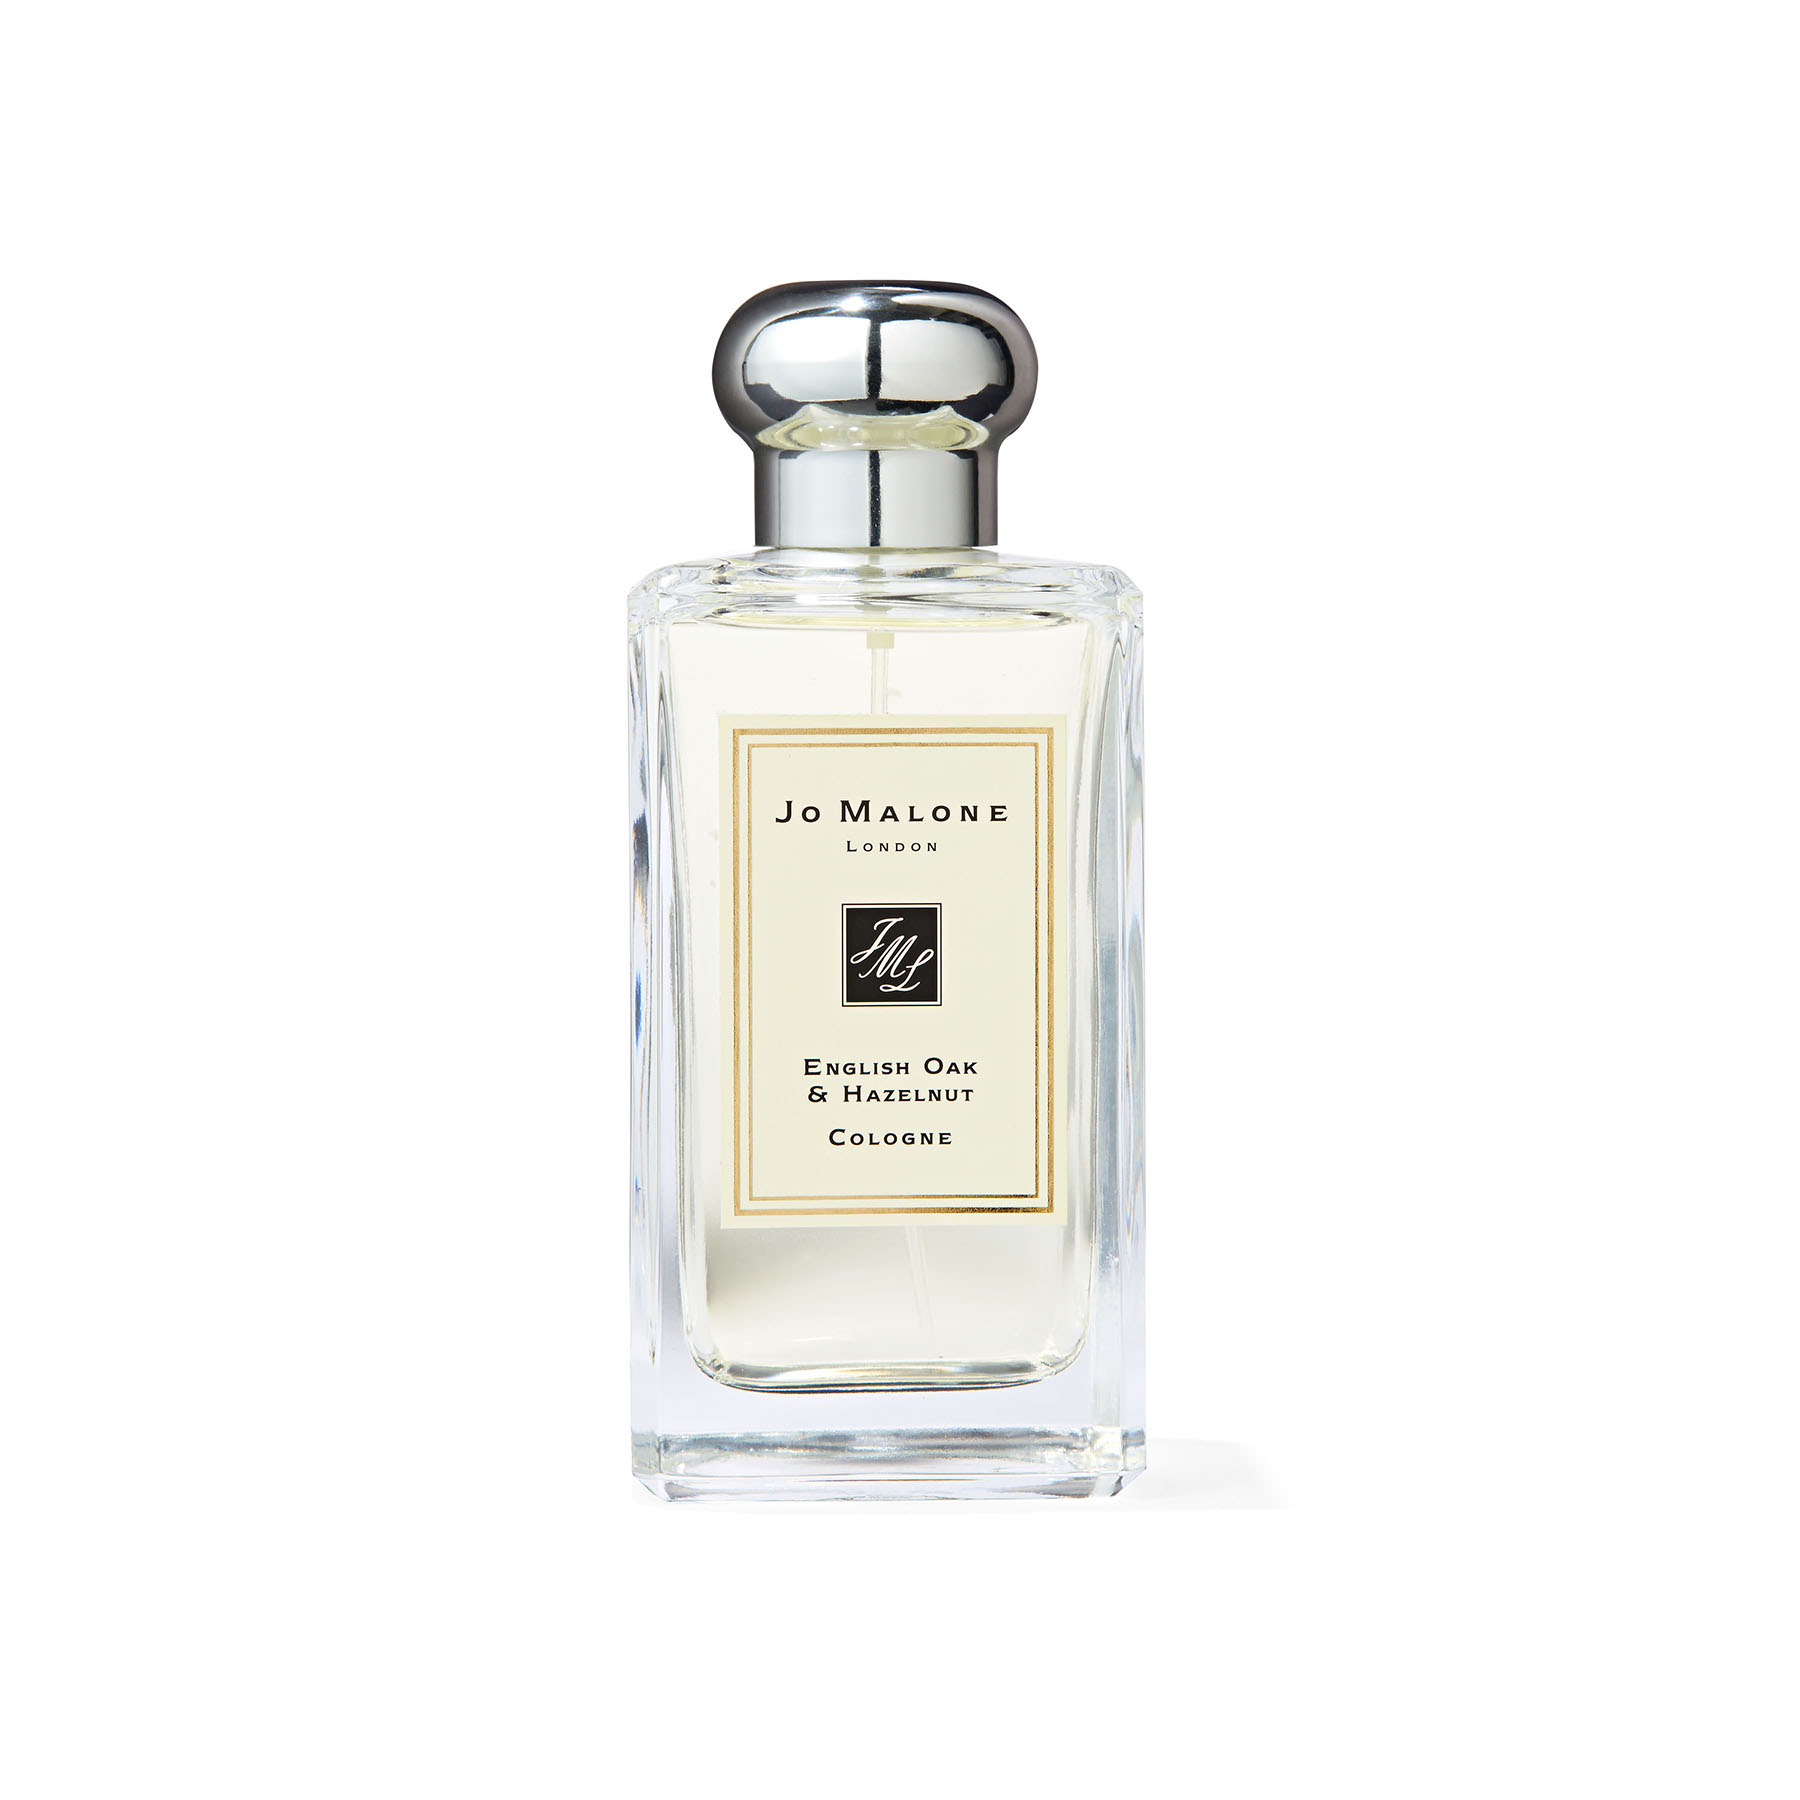 Jo Malone English Oak and Hazelnut Cologne